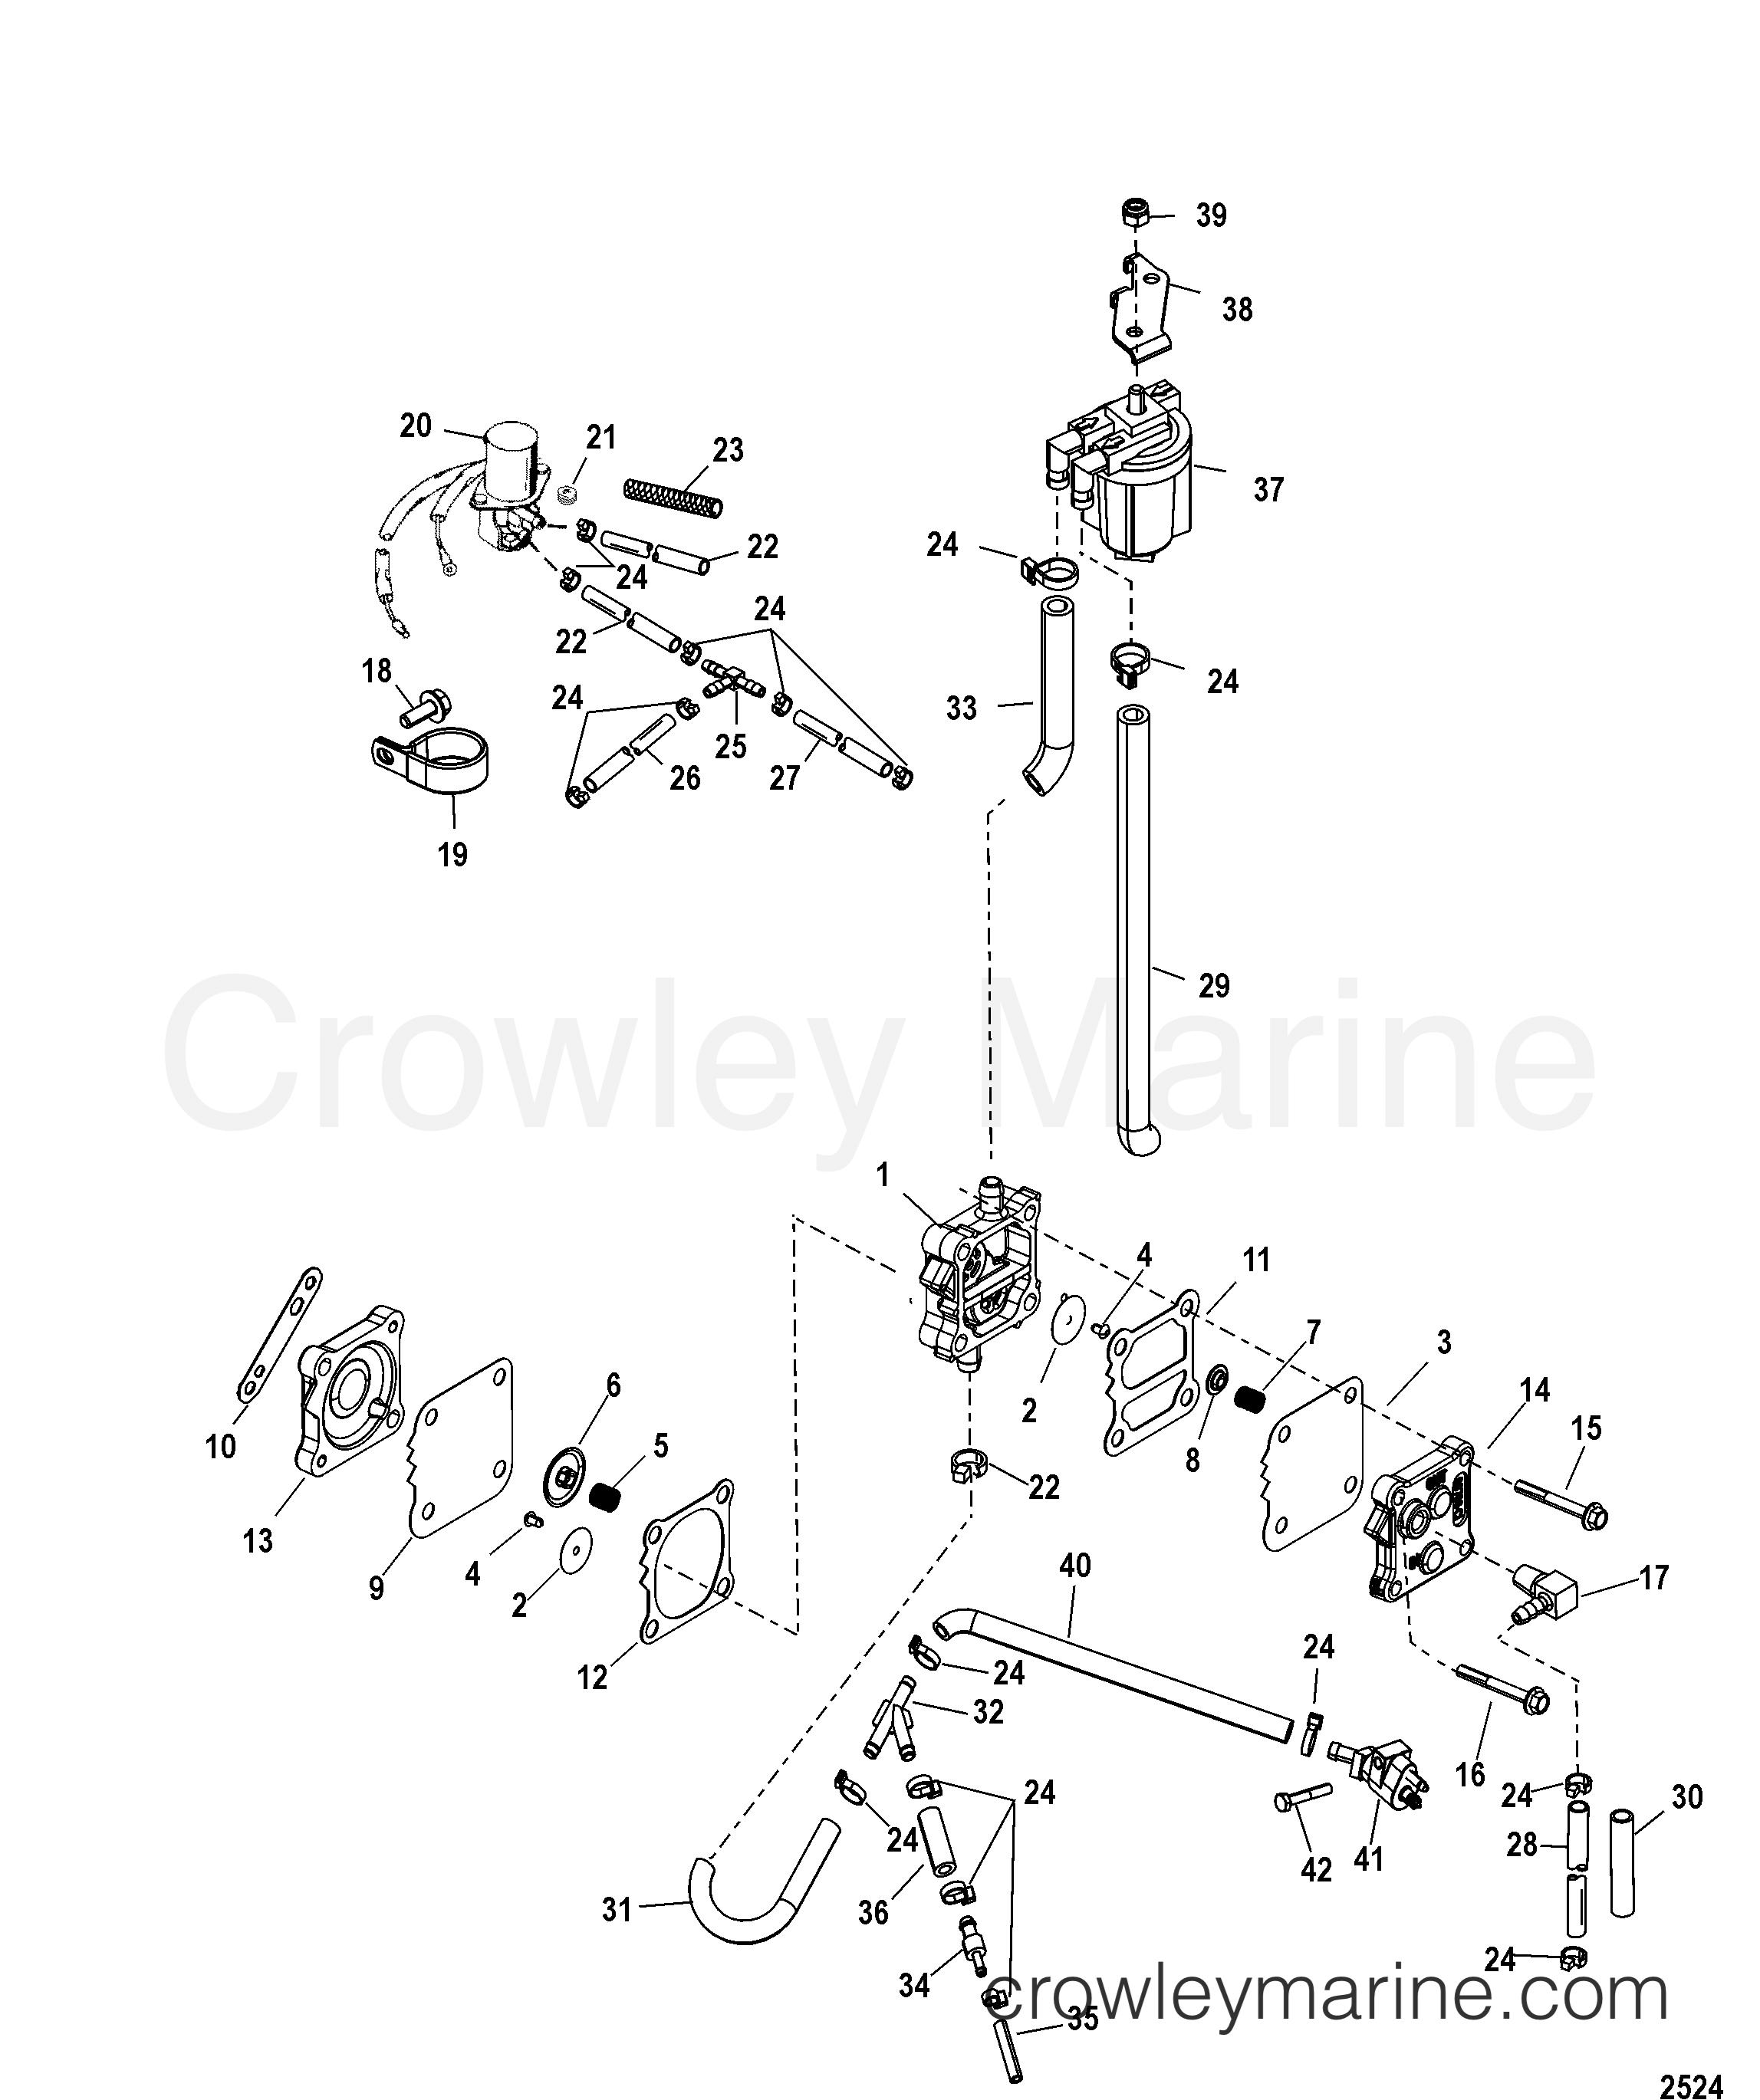 2000 Mariner Outboard 40 [ML] - 7041217JF - FUEL PUMP(ELECTRIC)(DESIGN II) section